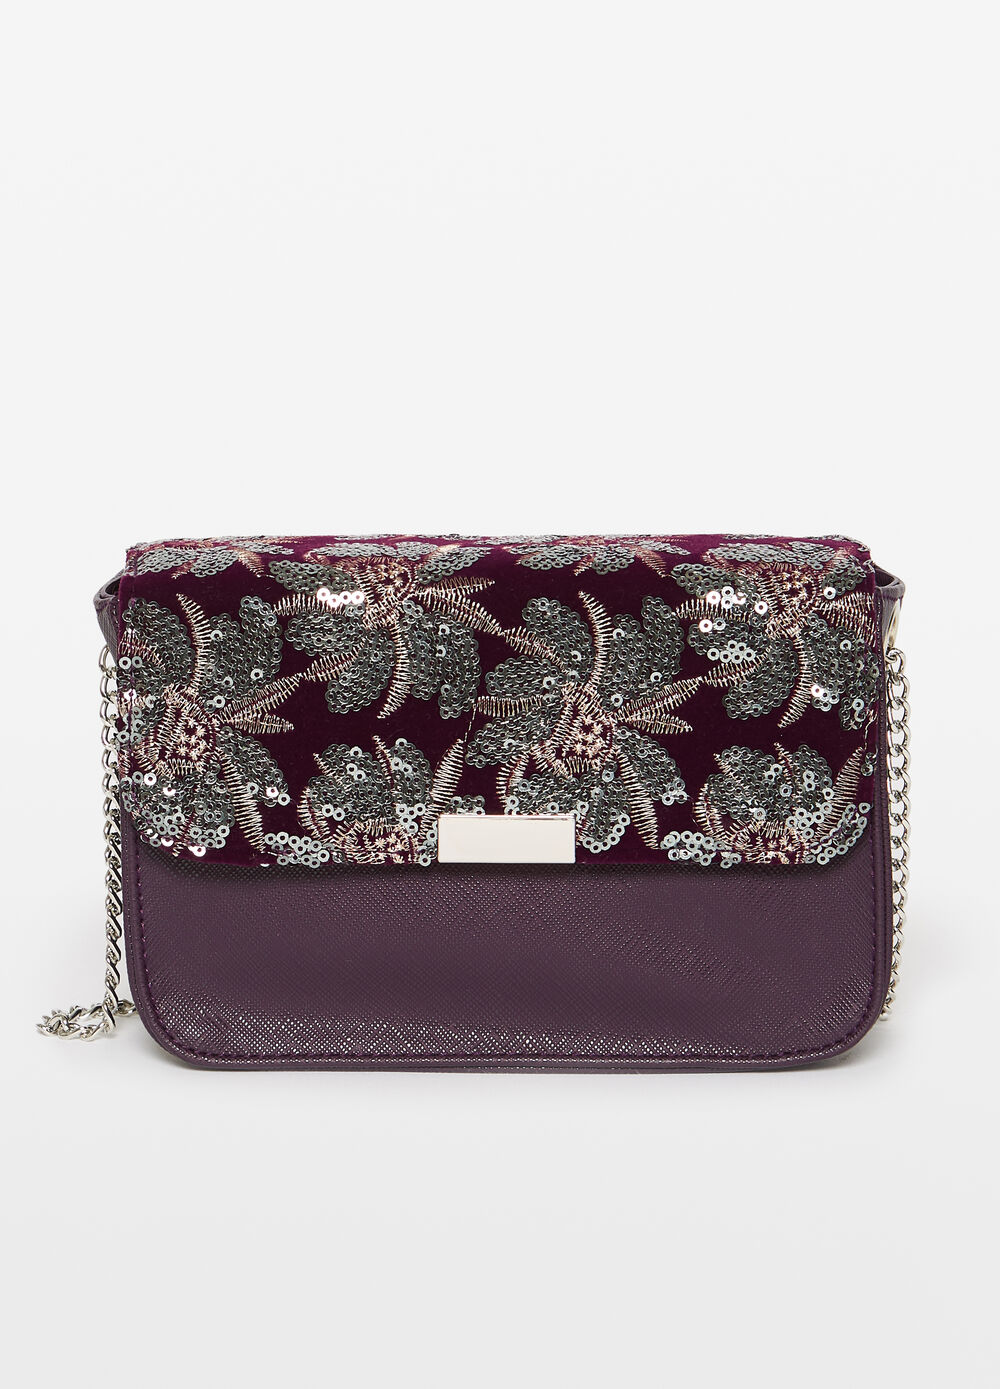 Shoulder bag with floral sequins and embroidery